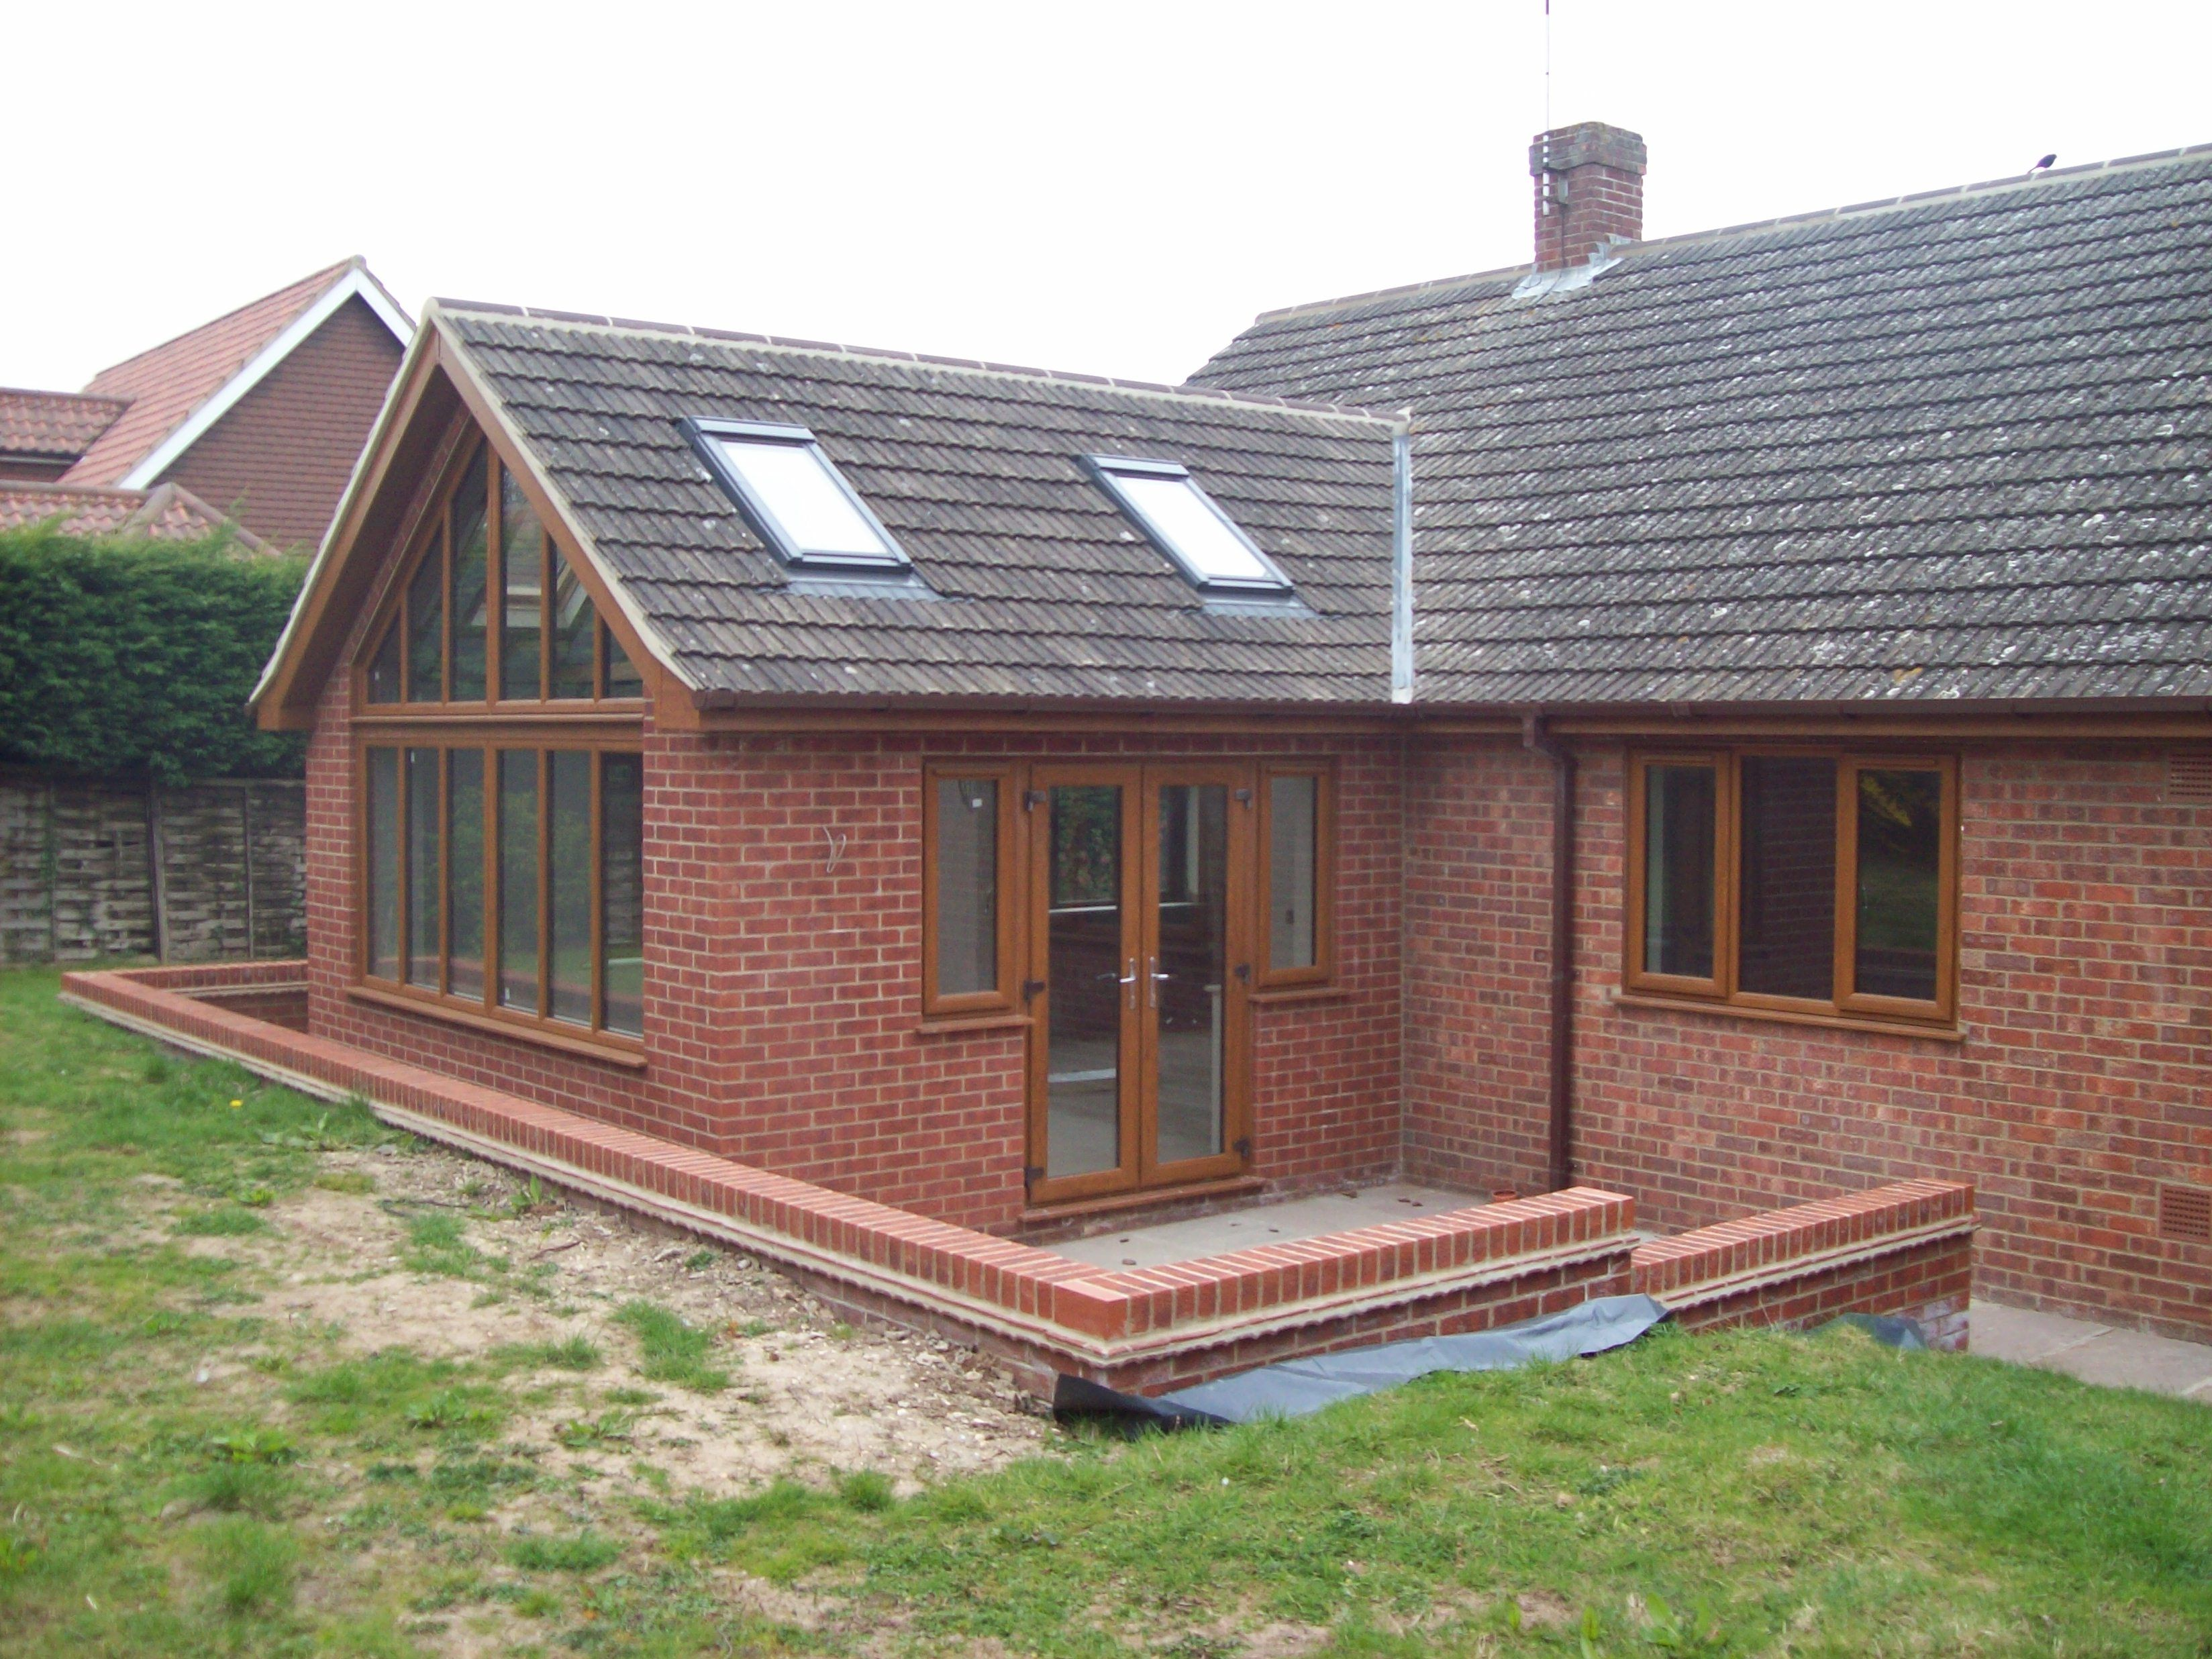 extensions house google search - Bungalow Conversion Ideas